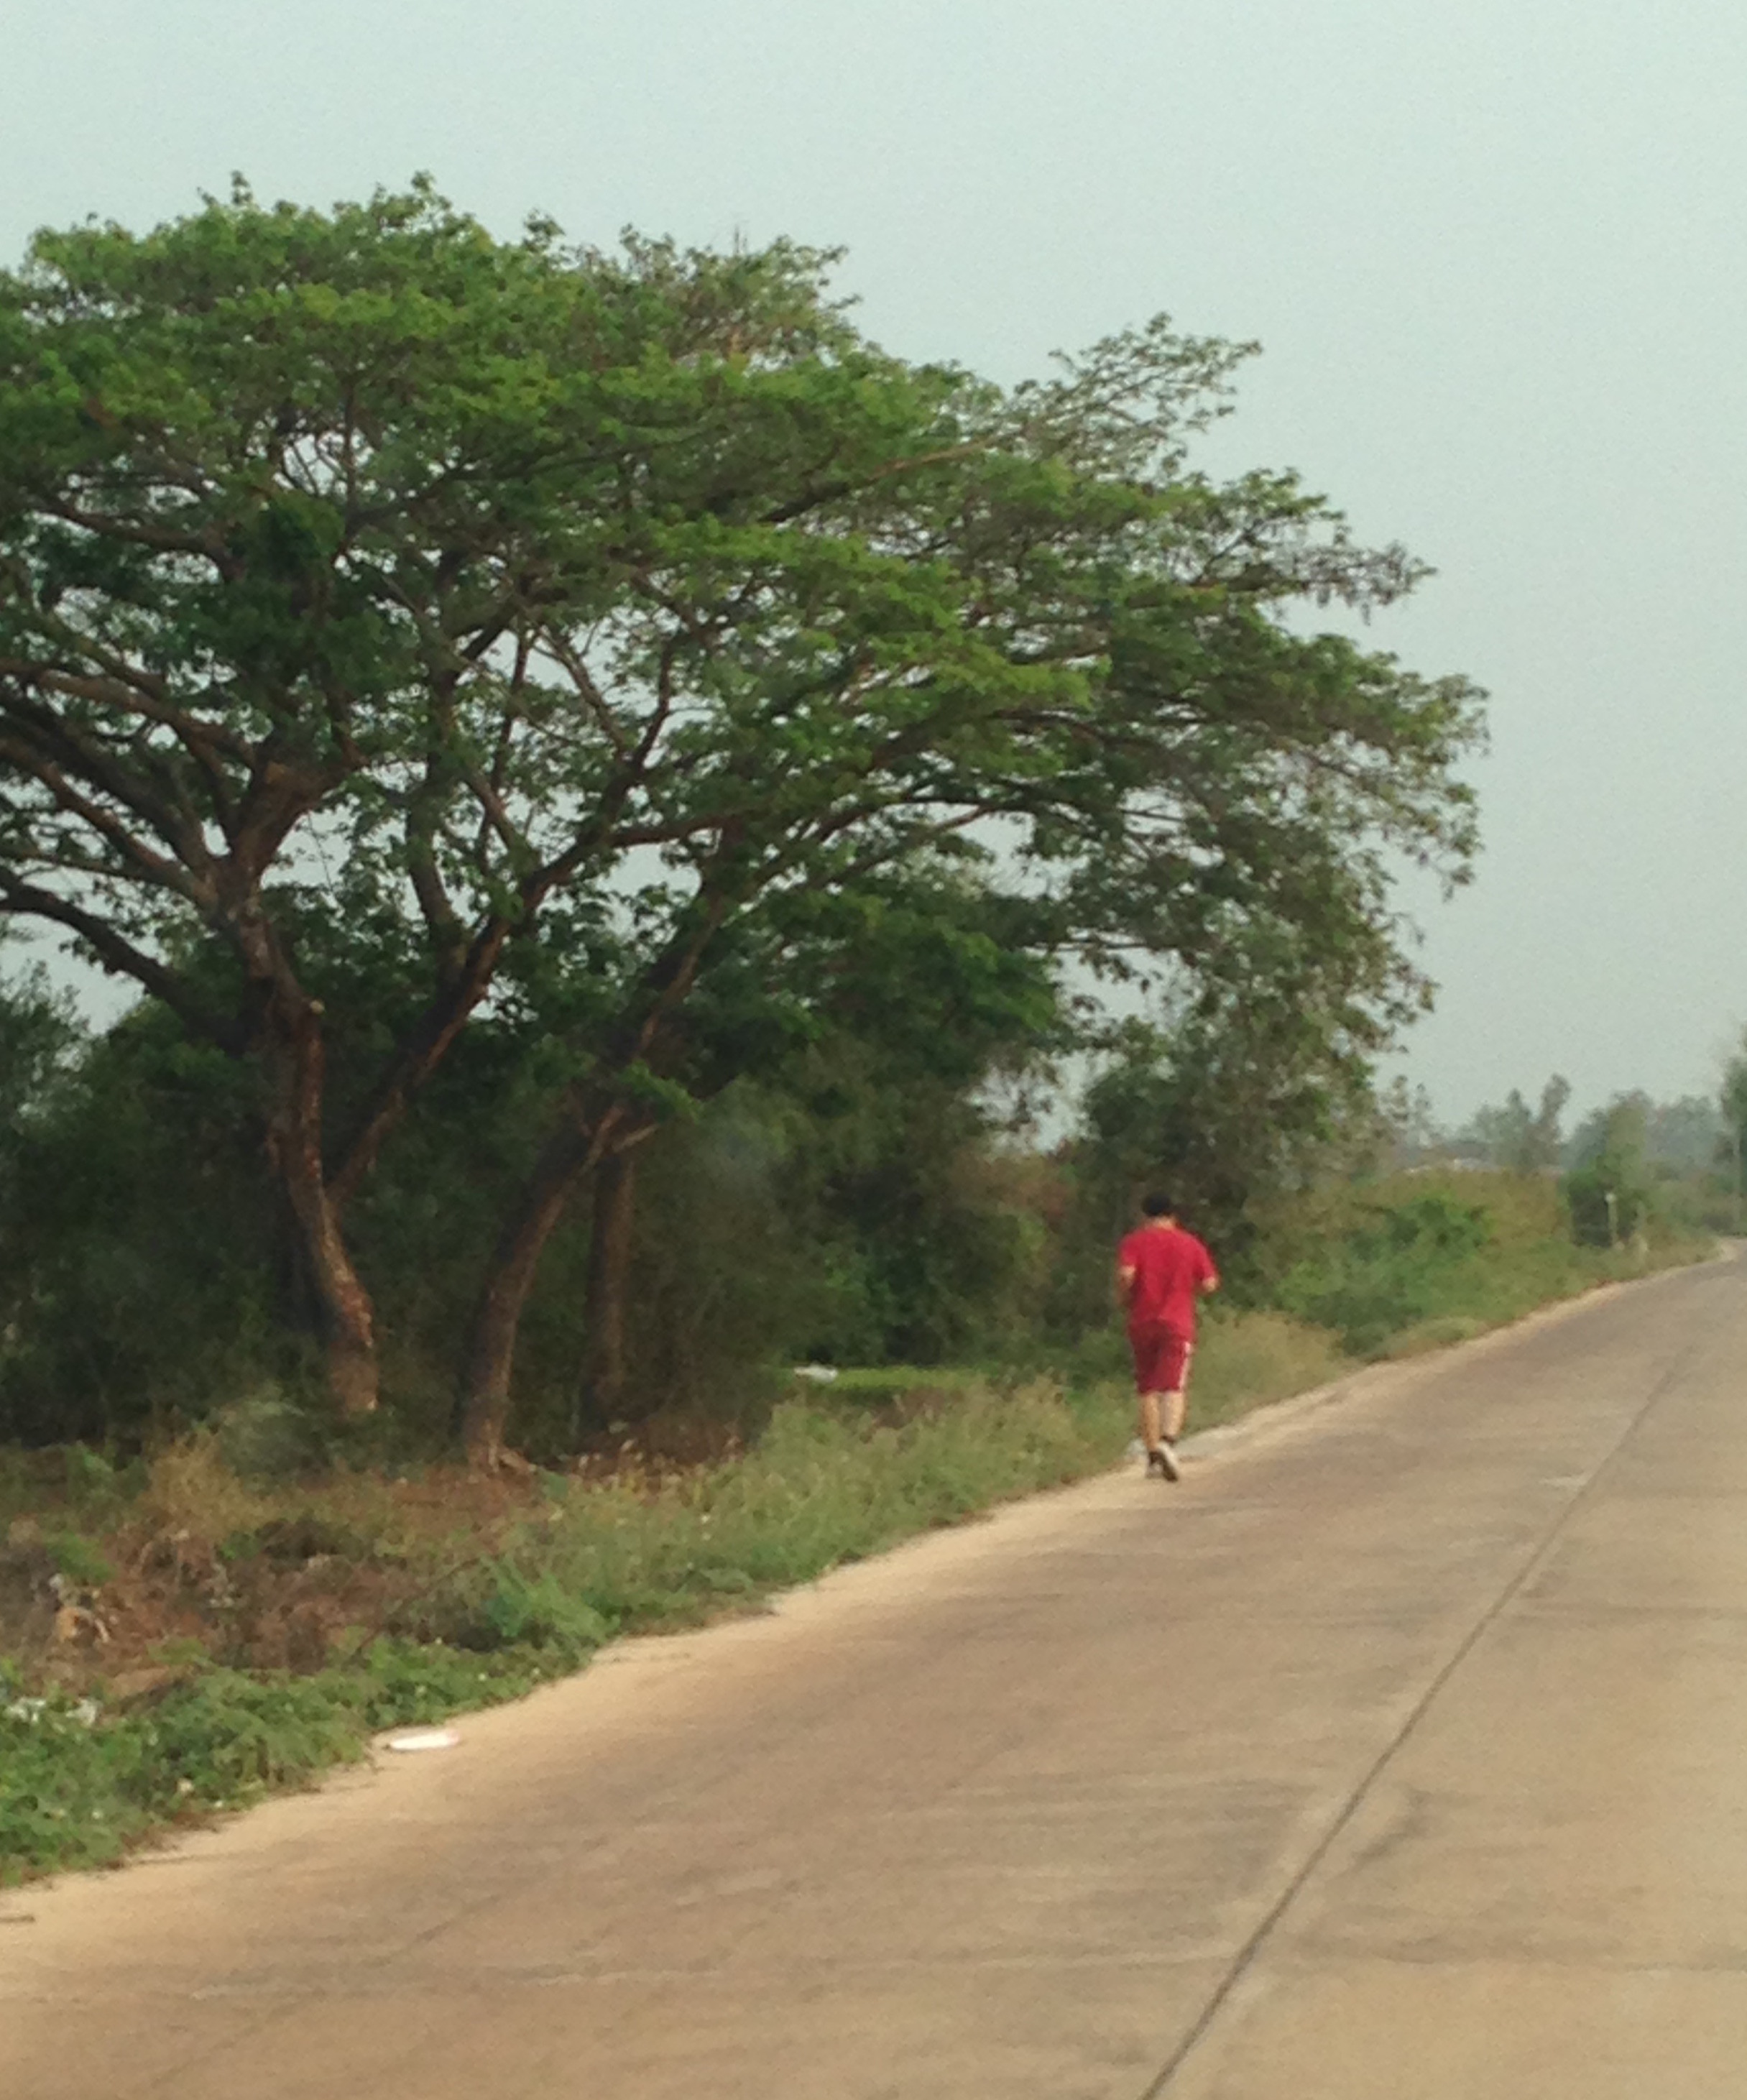 A fellow runner - a rare sight on the rural roads near our home. Next to my favorite tree.